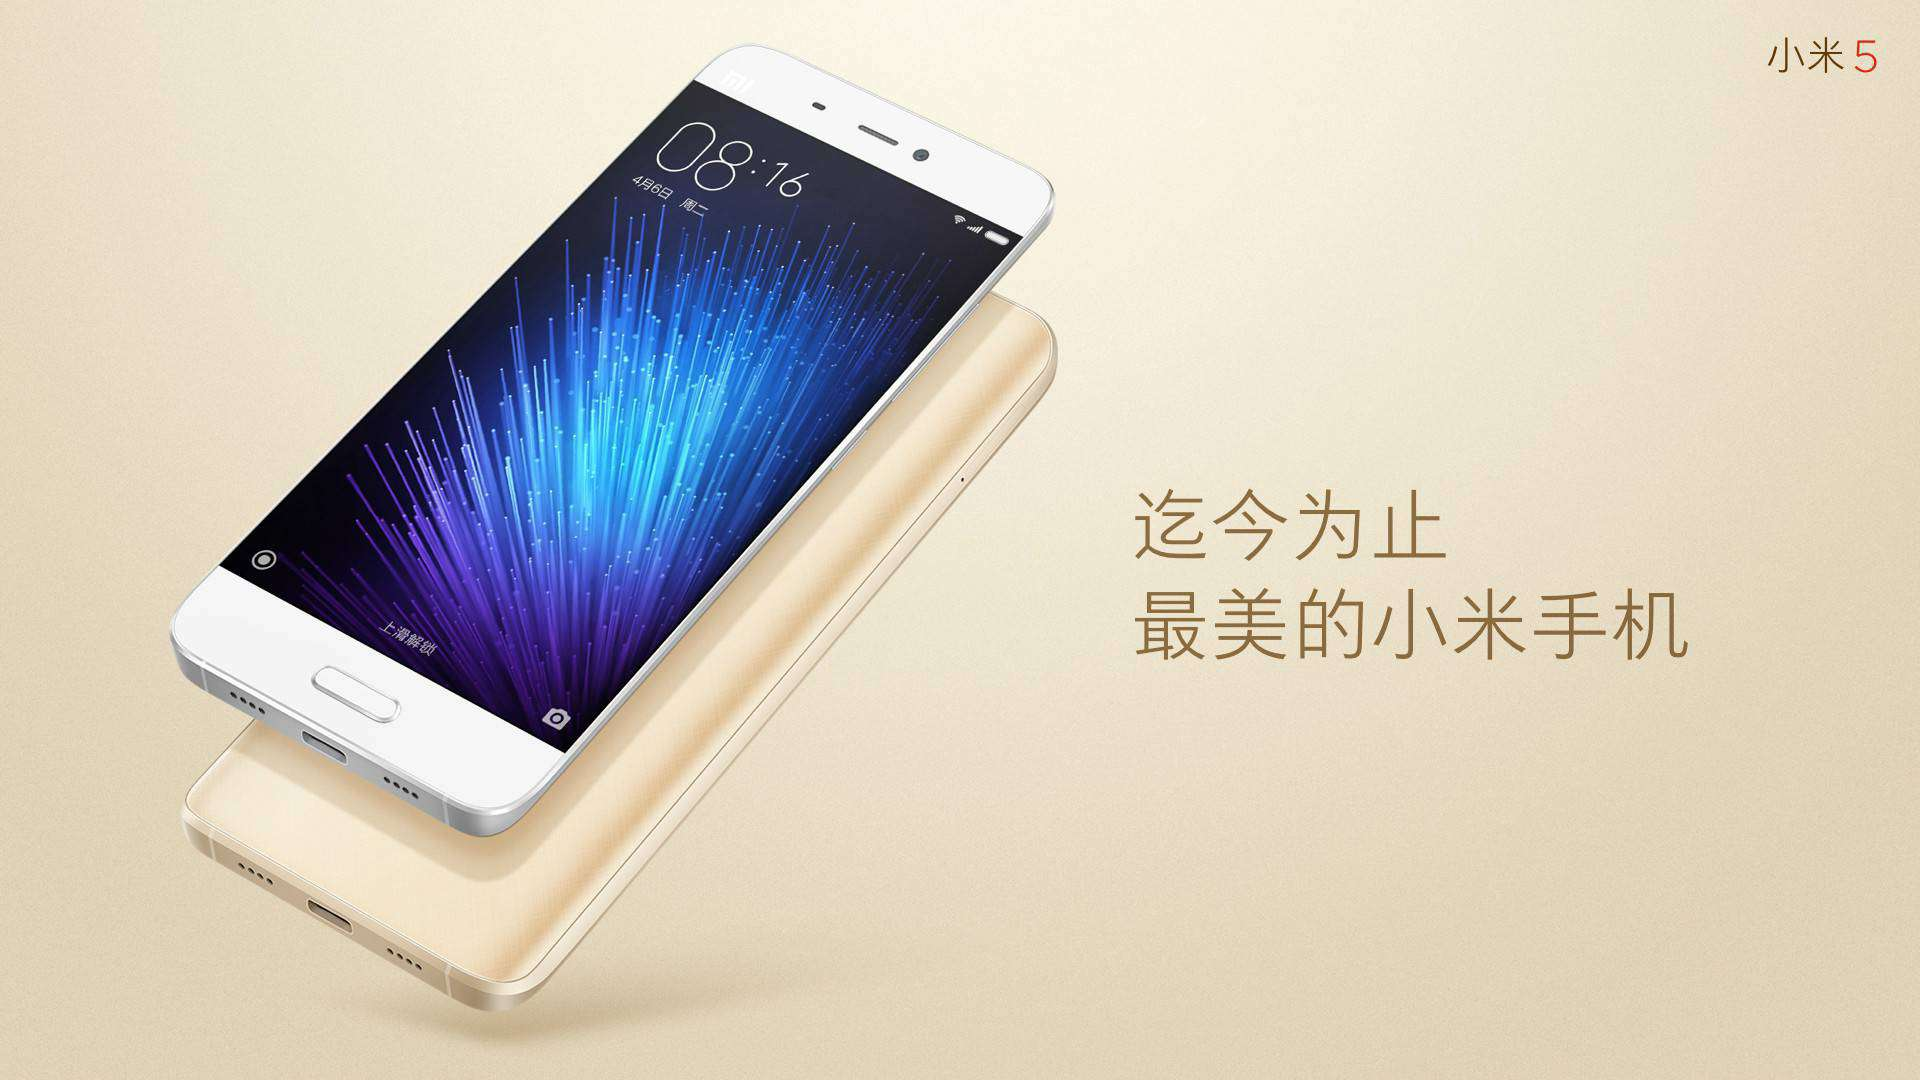 Xiaomi Mi 5 official image 2